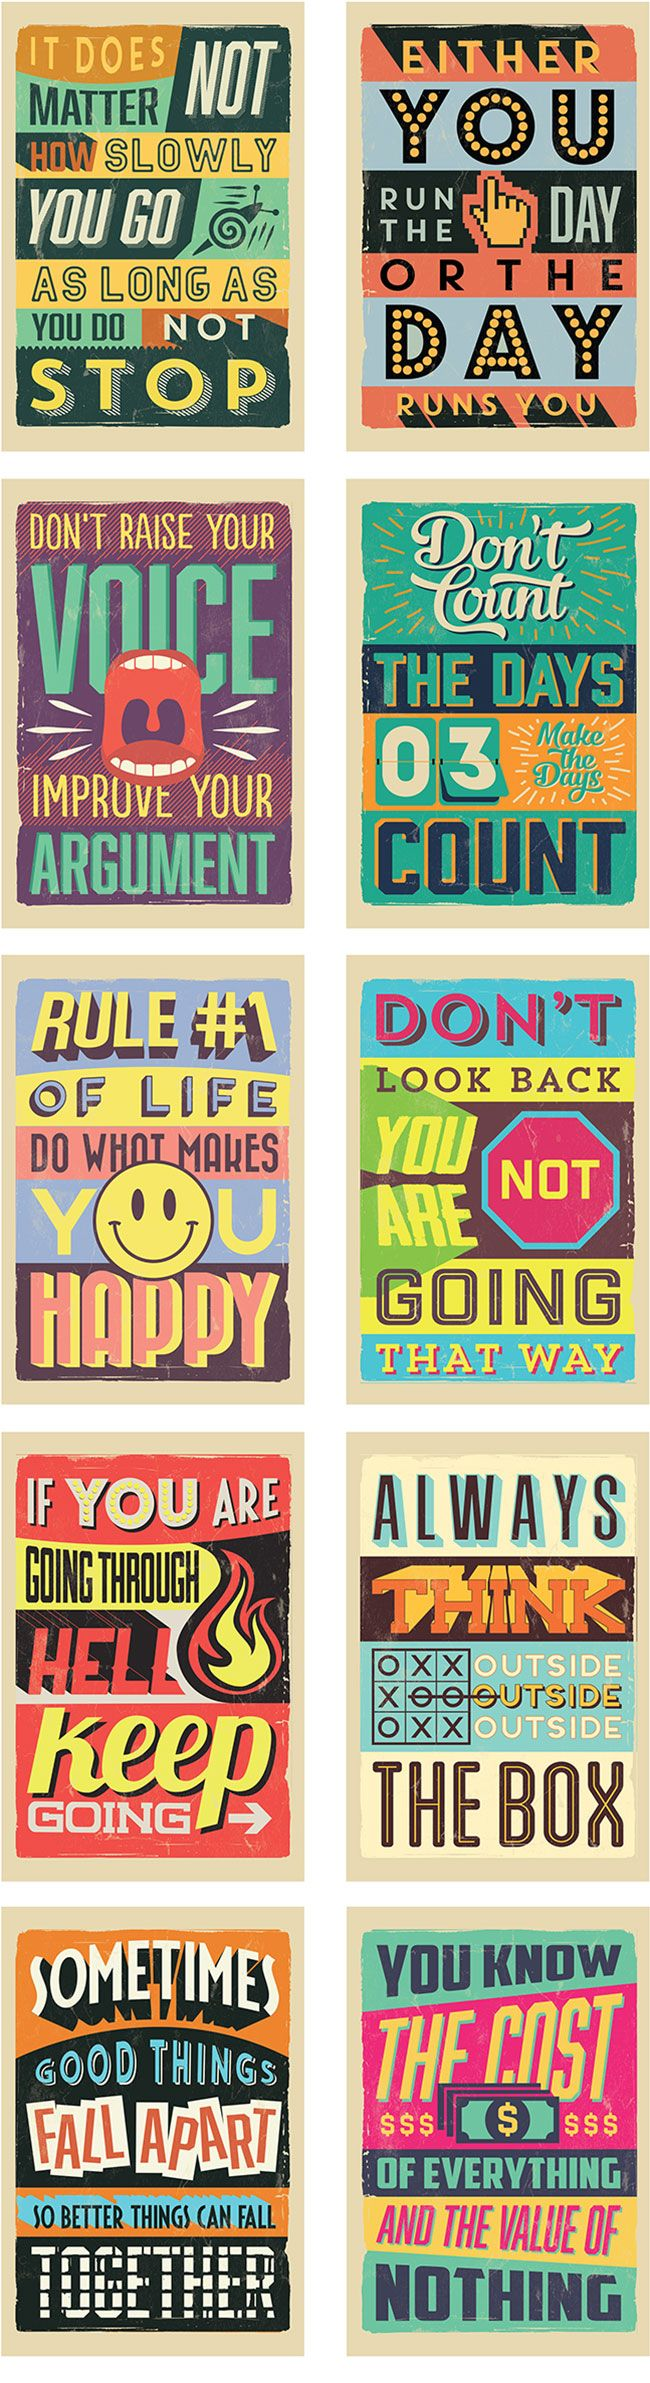 http://www.mightydeals.com/deal/vintage-motivational-quotes-poster-bundle.html